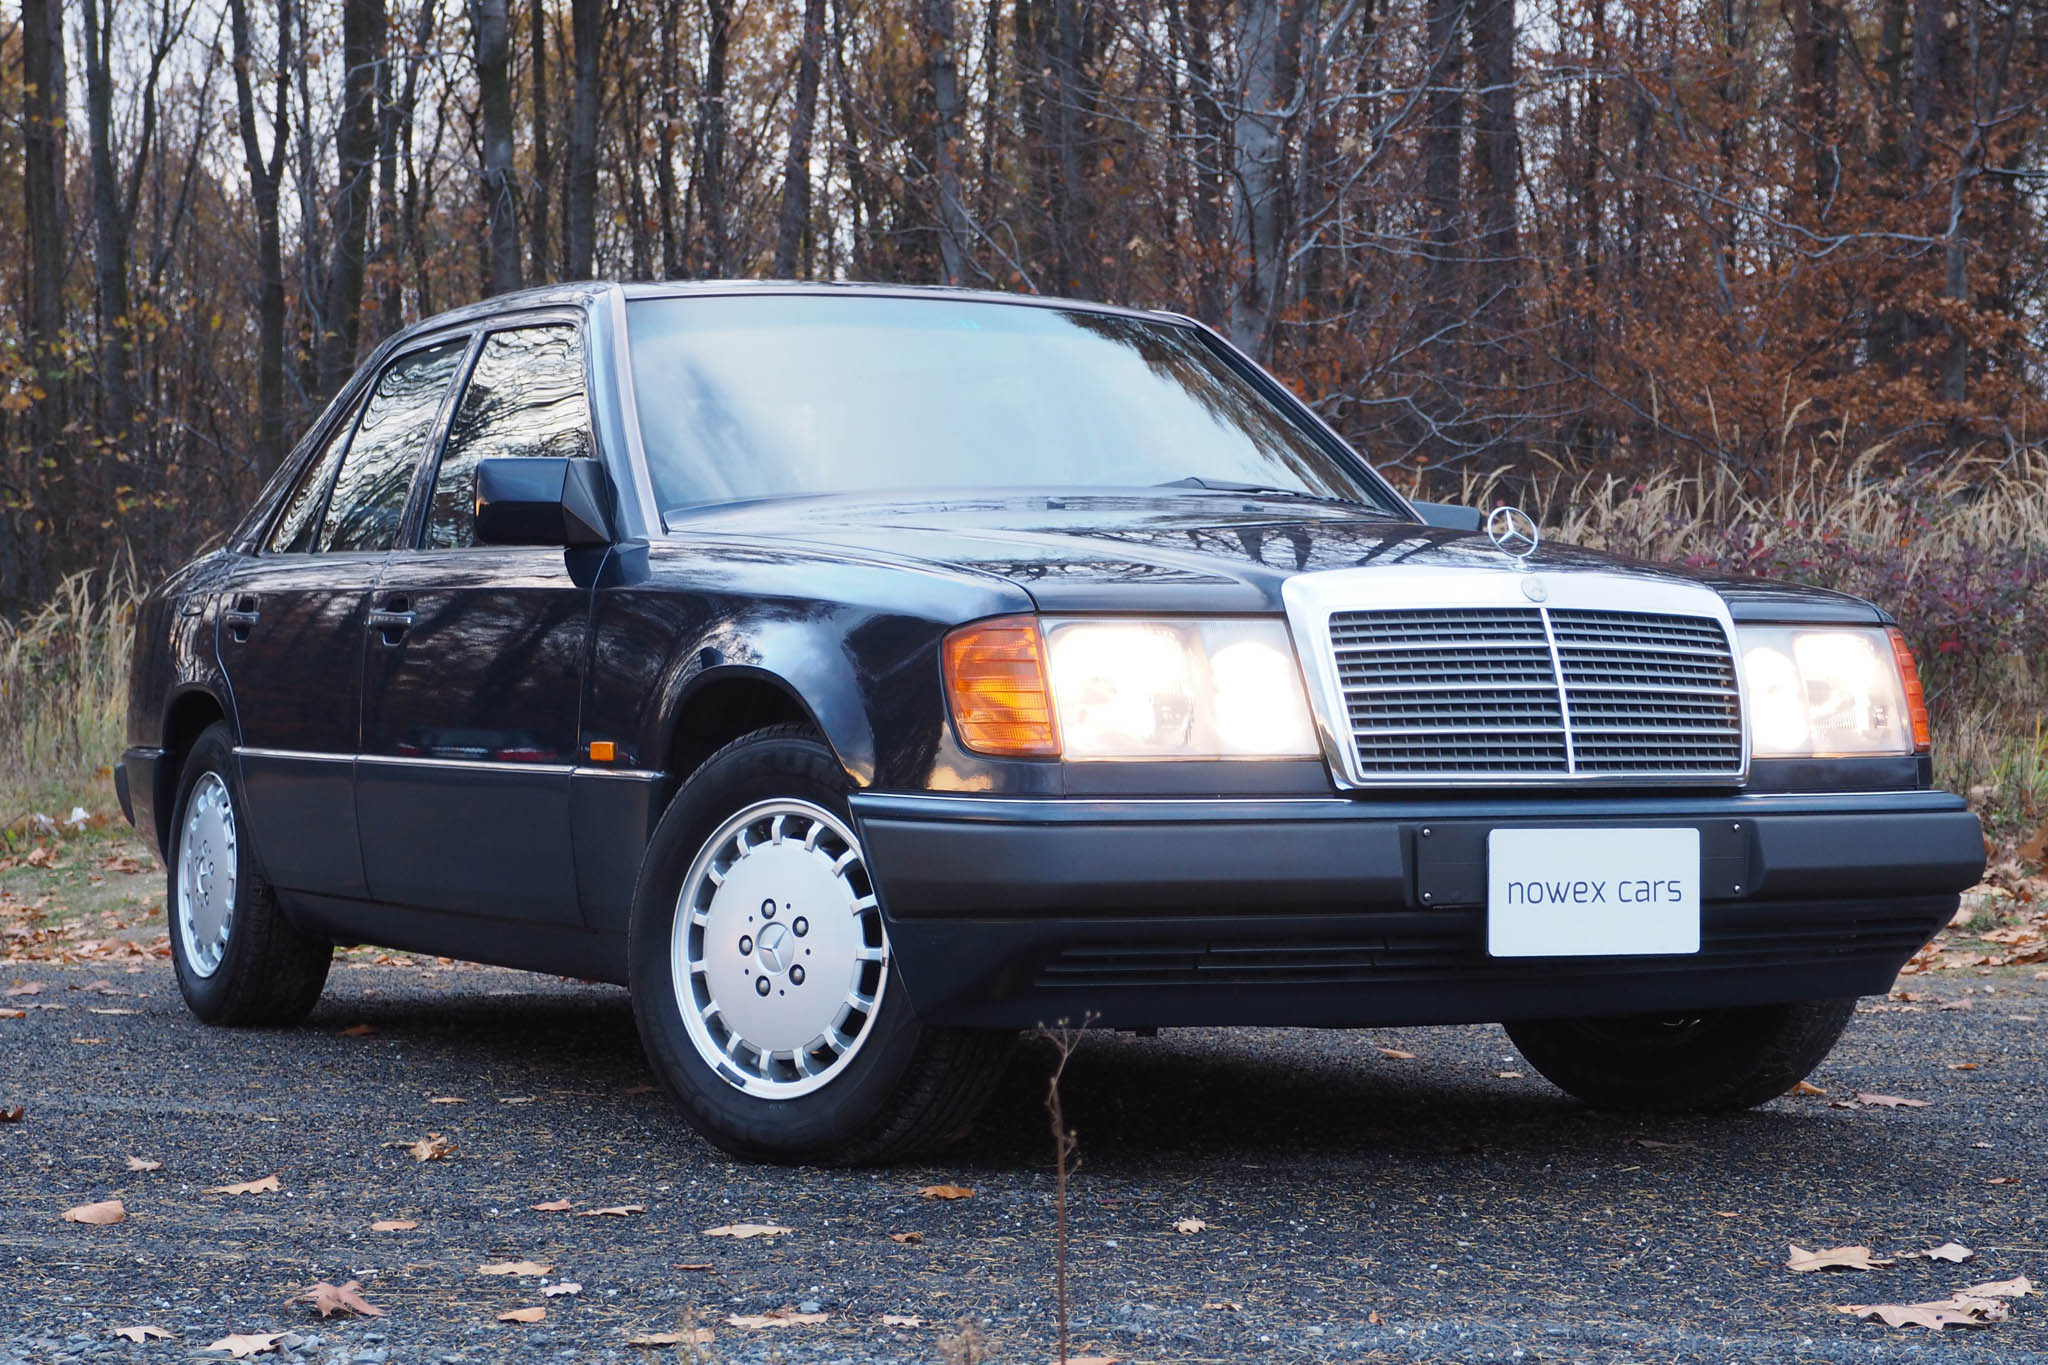 39 91 mercedes benz 300 e 24 nowex cars for 91 mercedes benz